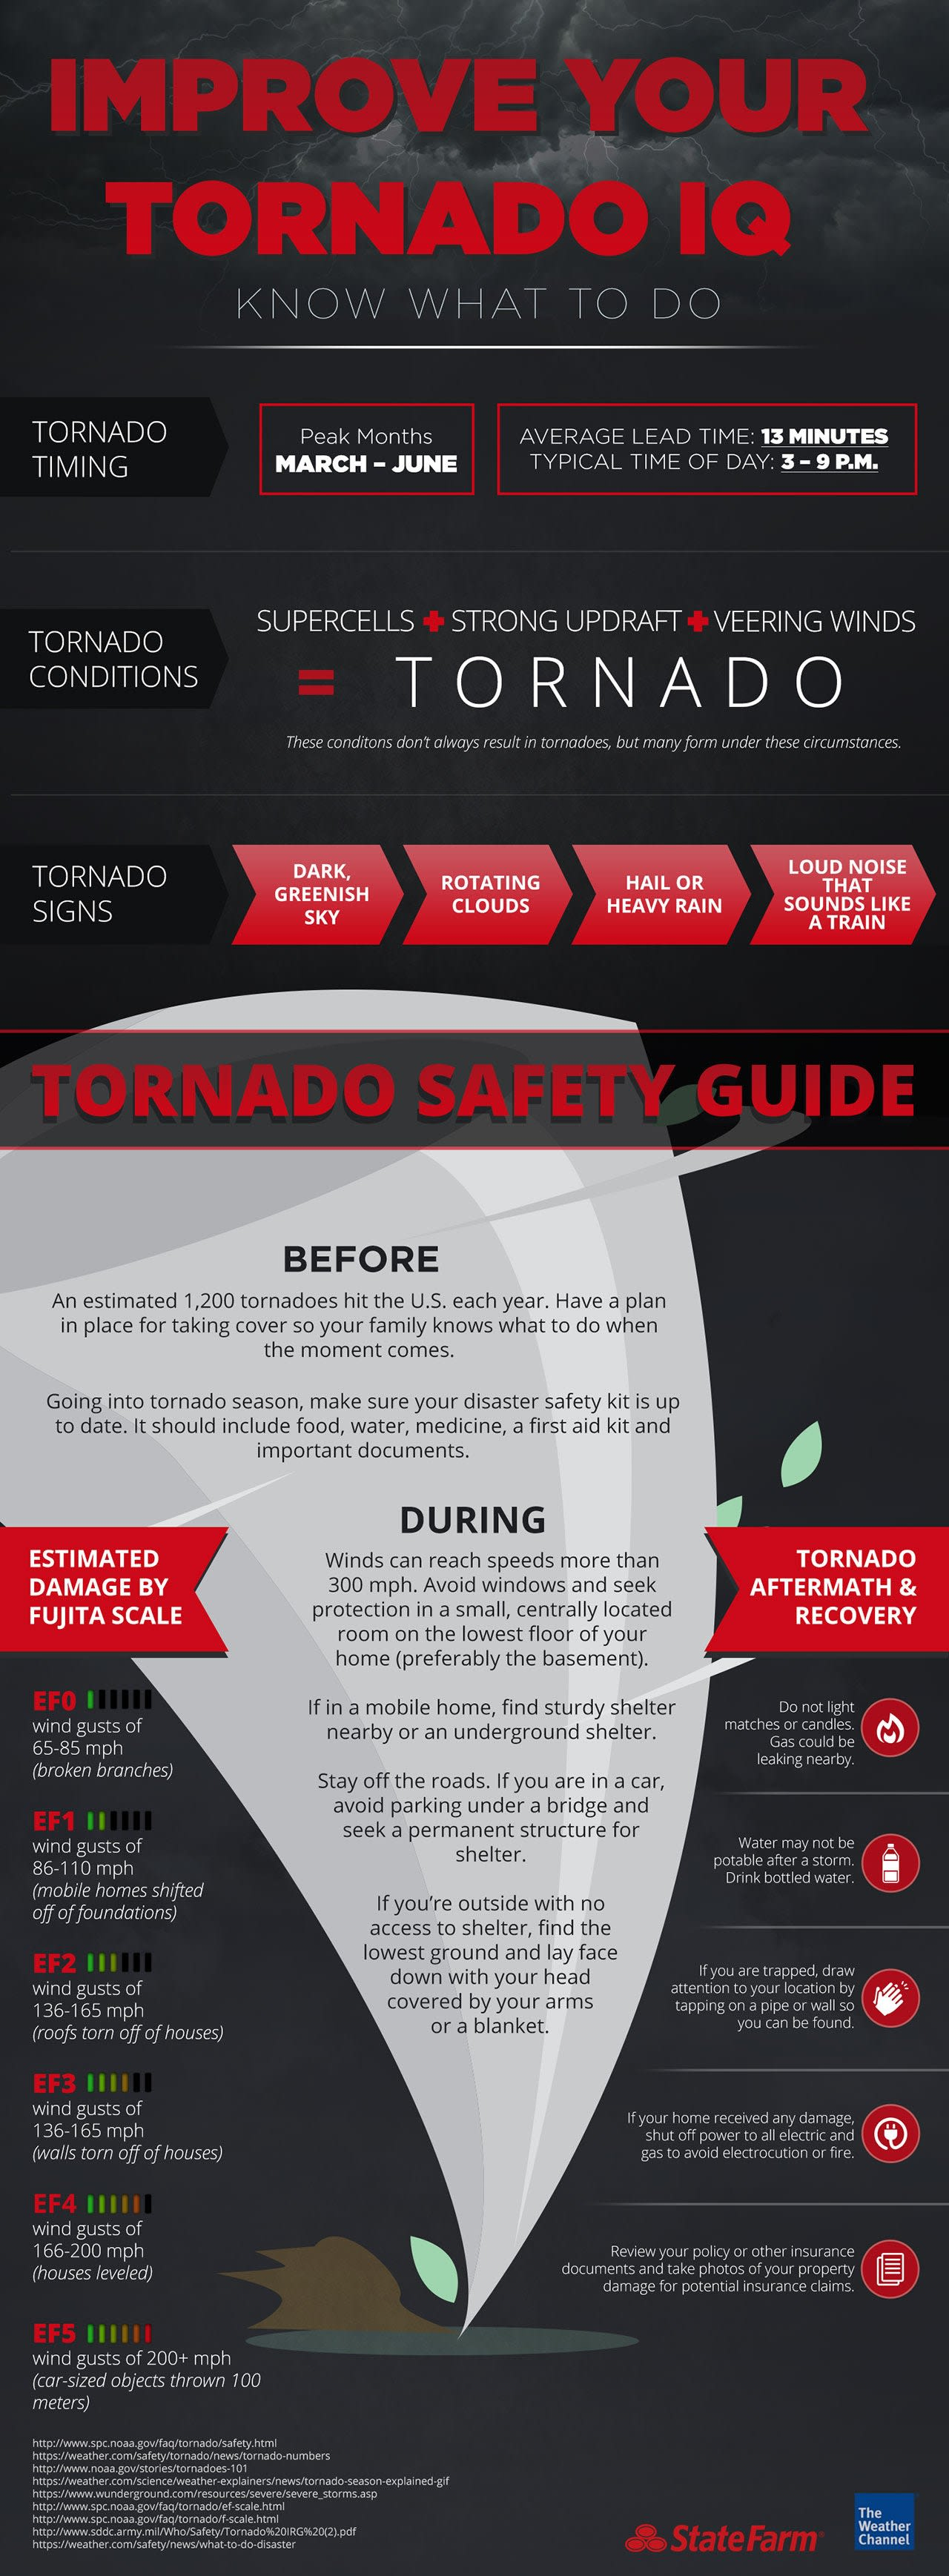 Weather Channel Tornado Infographic